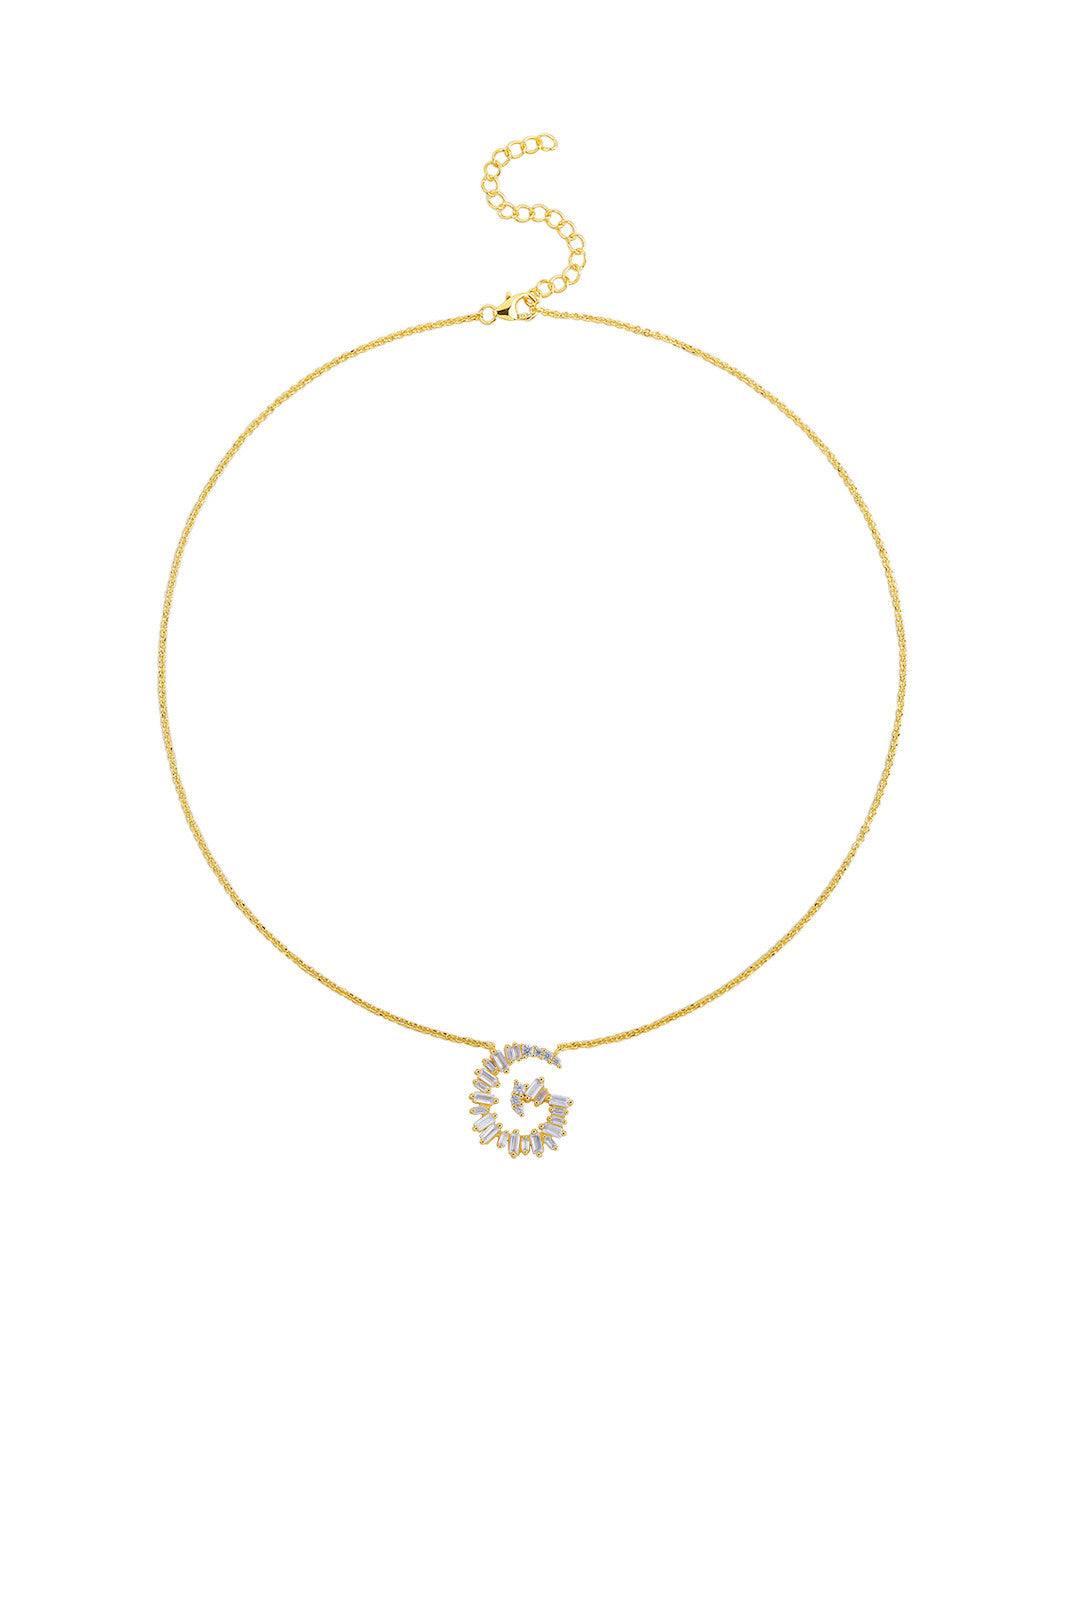 Gold Plated Sterling Silver Initial Necklace - Letter G Detail